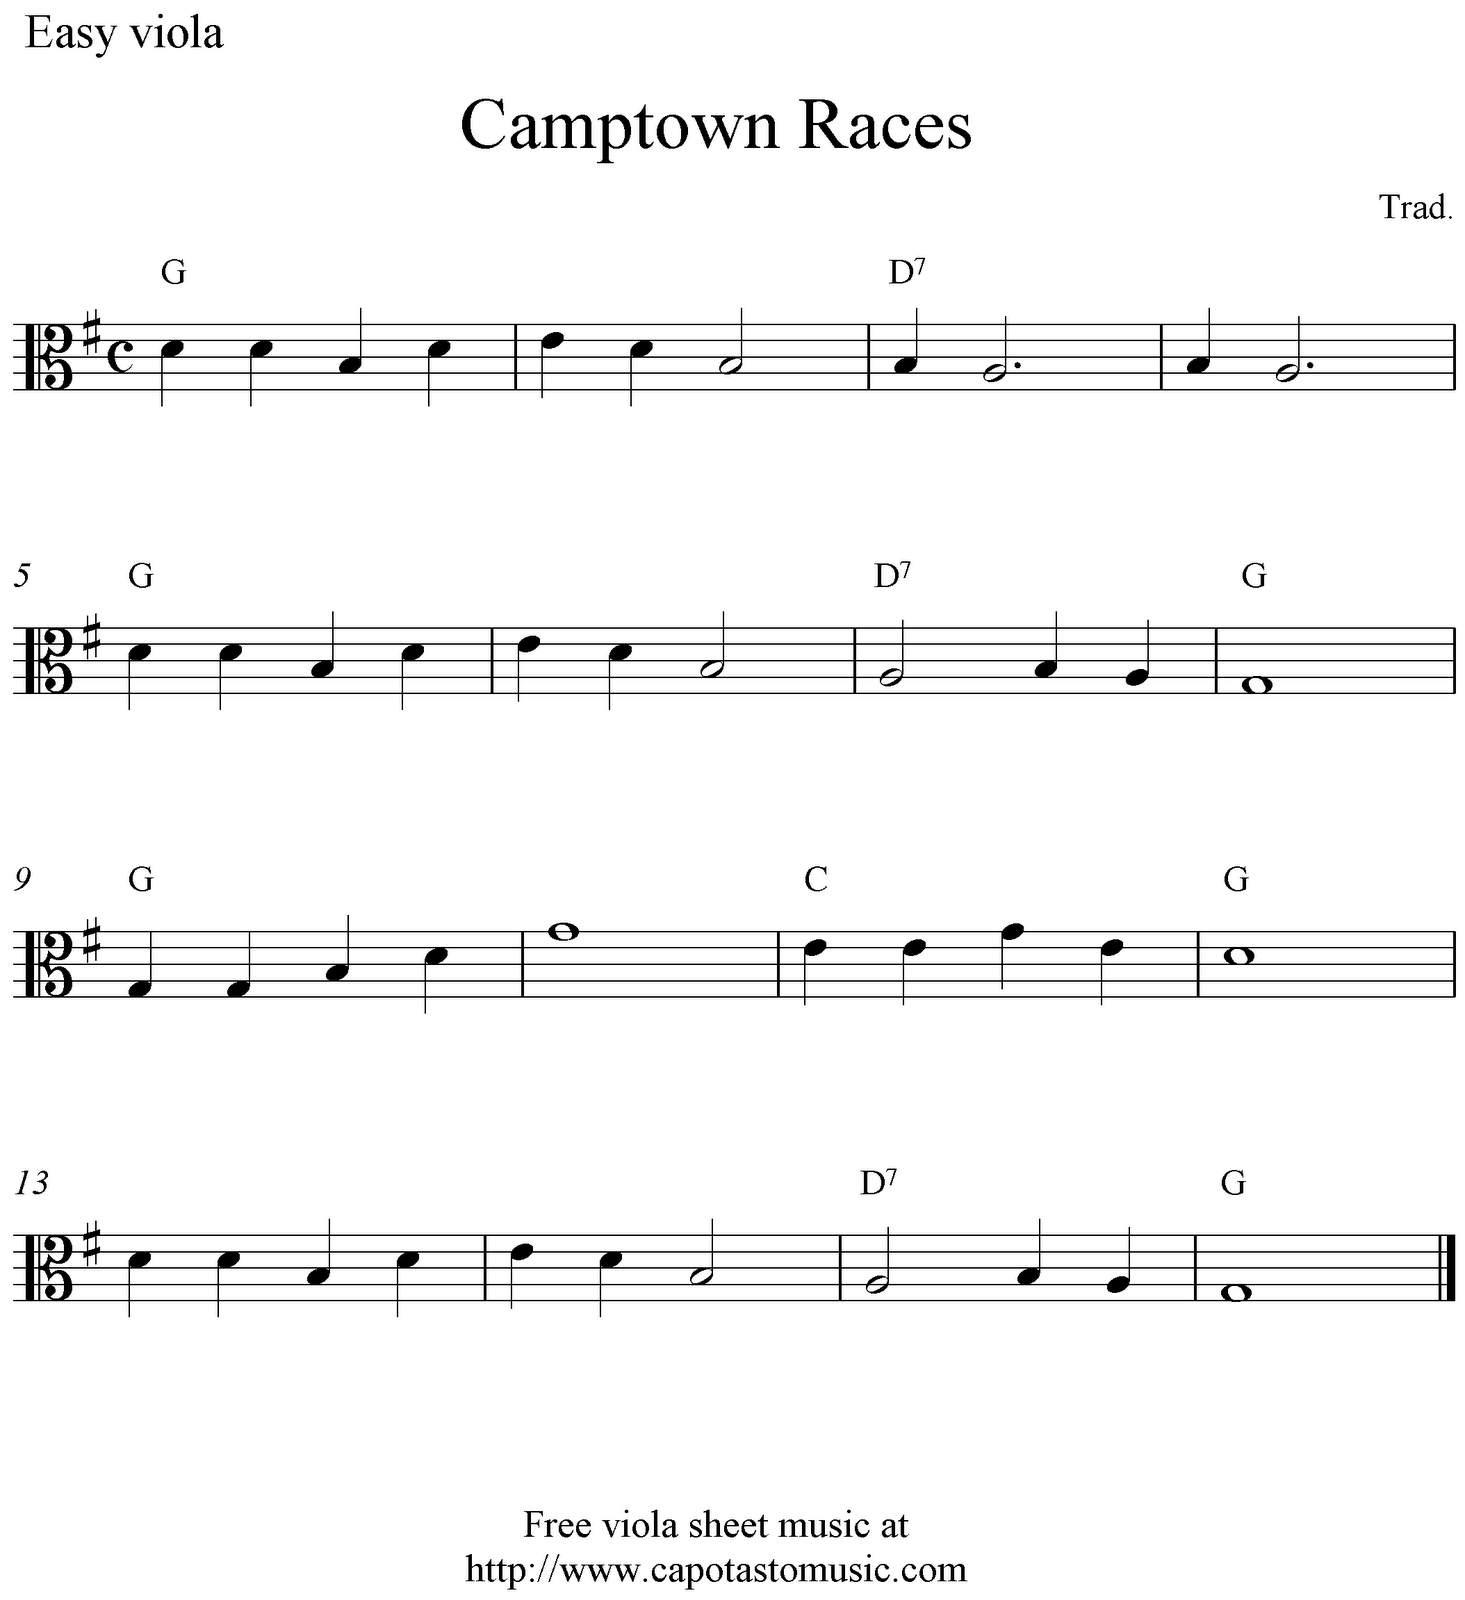 Free Easy Viola Sheet Music, Camptown Races